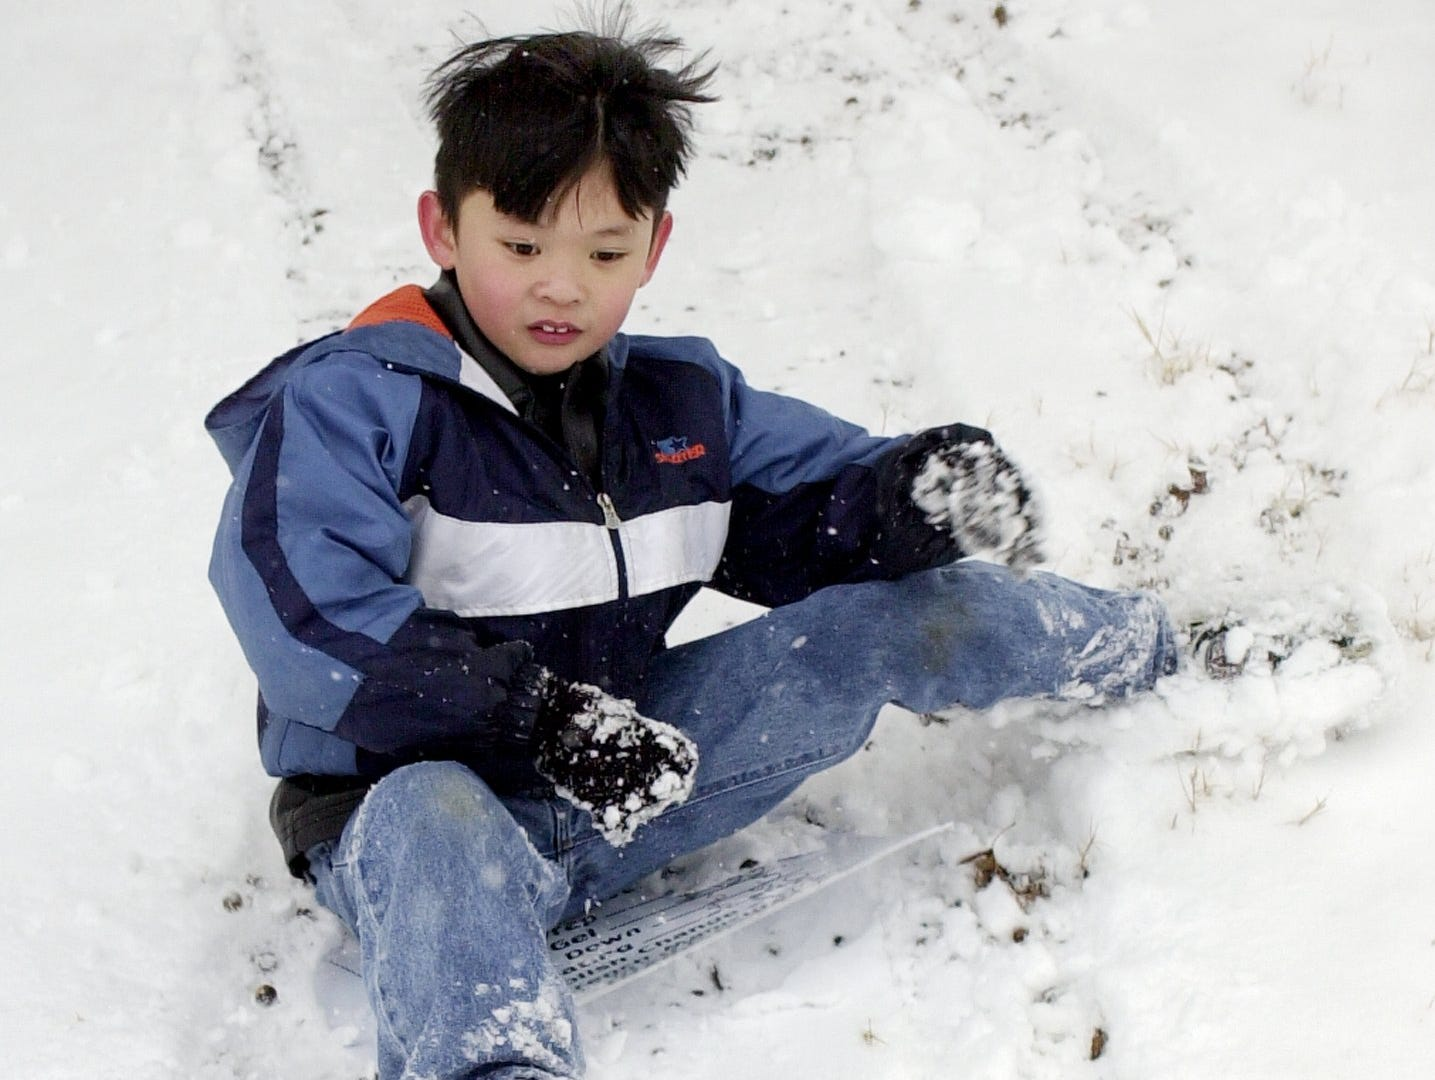 Kenny Doan , 8 slides down a hill near Palmetto Exposition Center l/3/02 using a plastic sign as his toboggan. He was playing in the snow with his sister and his uncle.